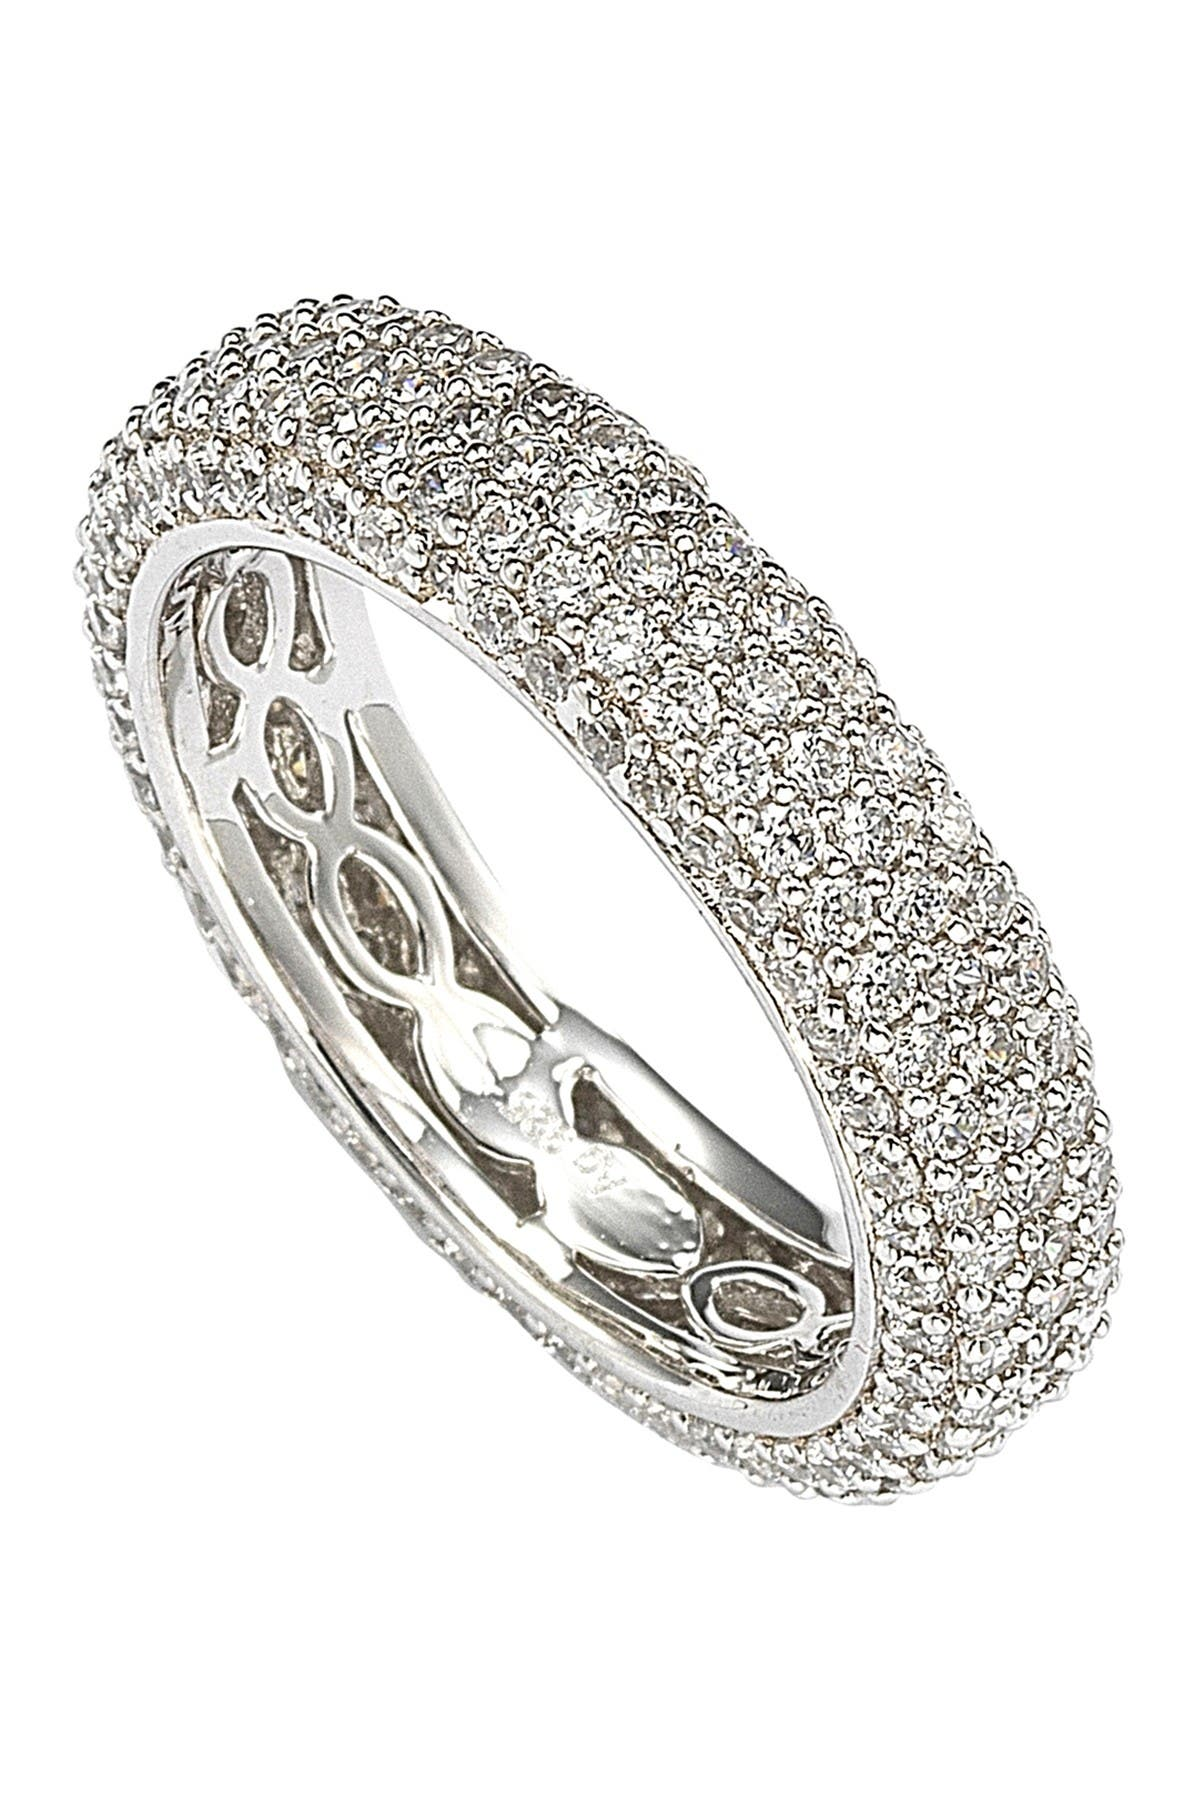 Image of Suzy Levian Sterling Silver Cubic Zirconia White Eternity Band Ring